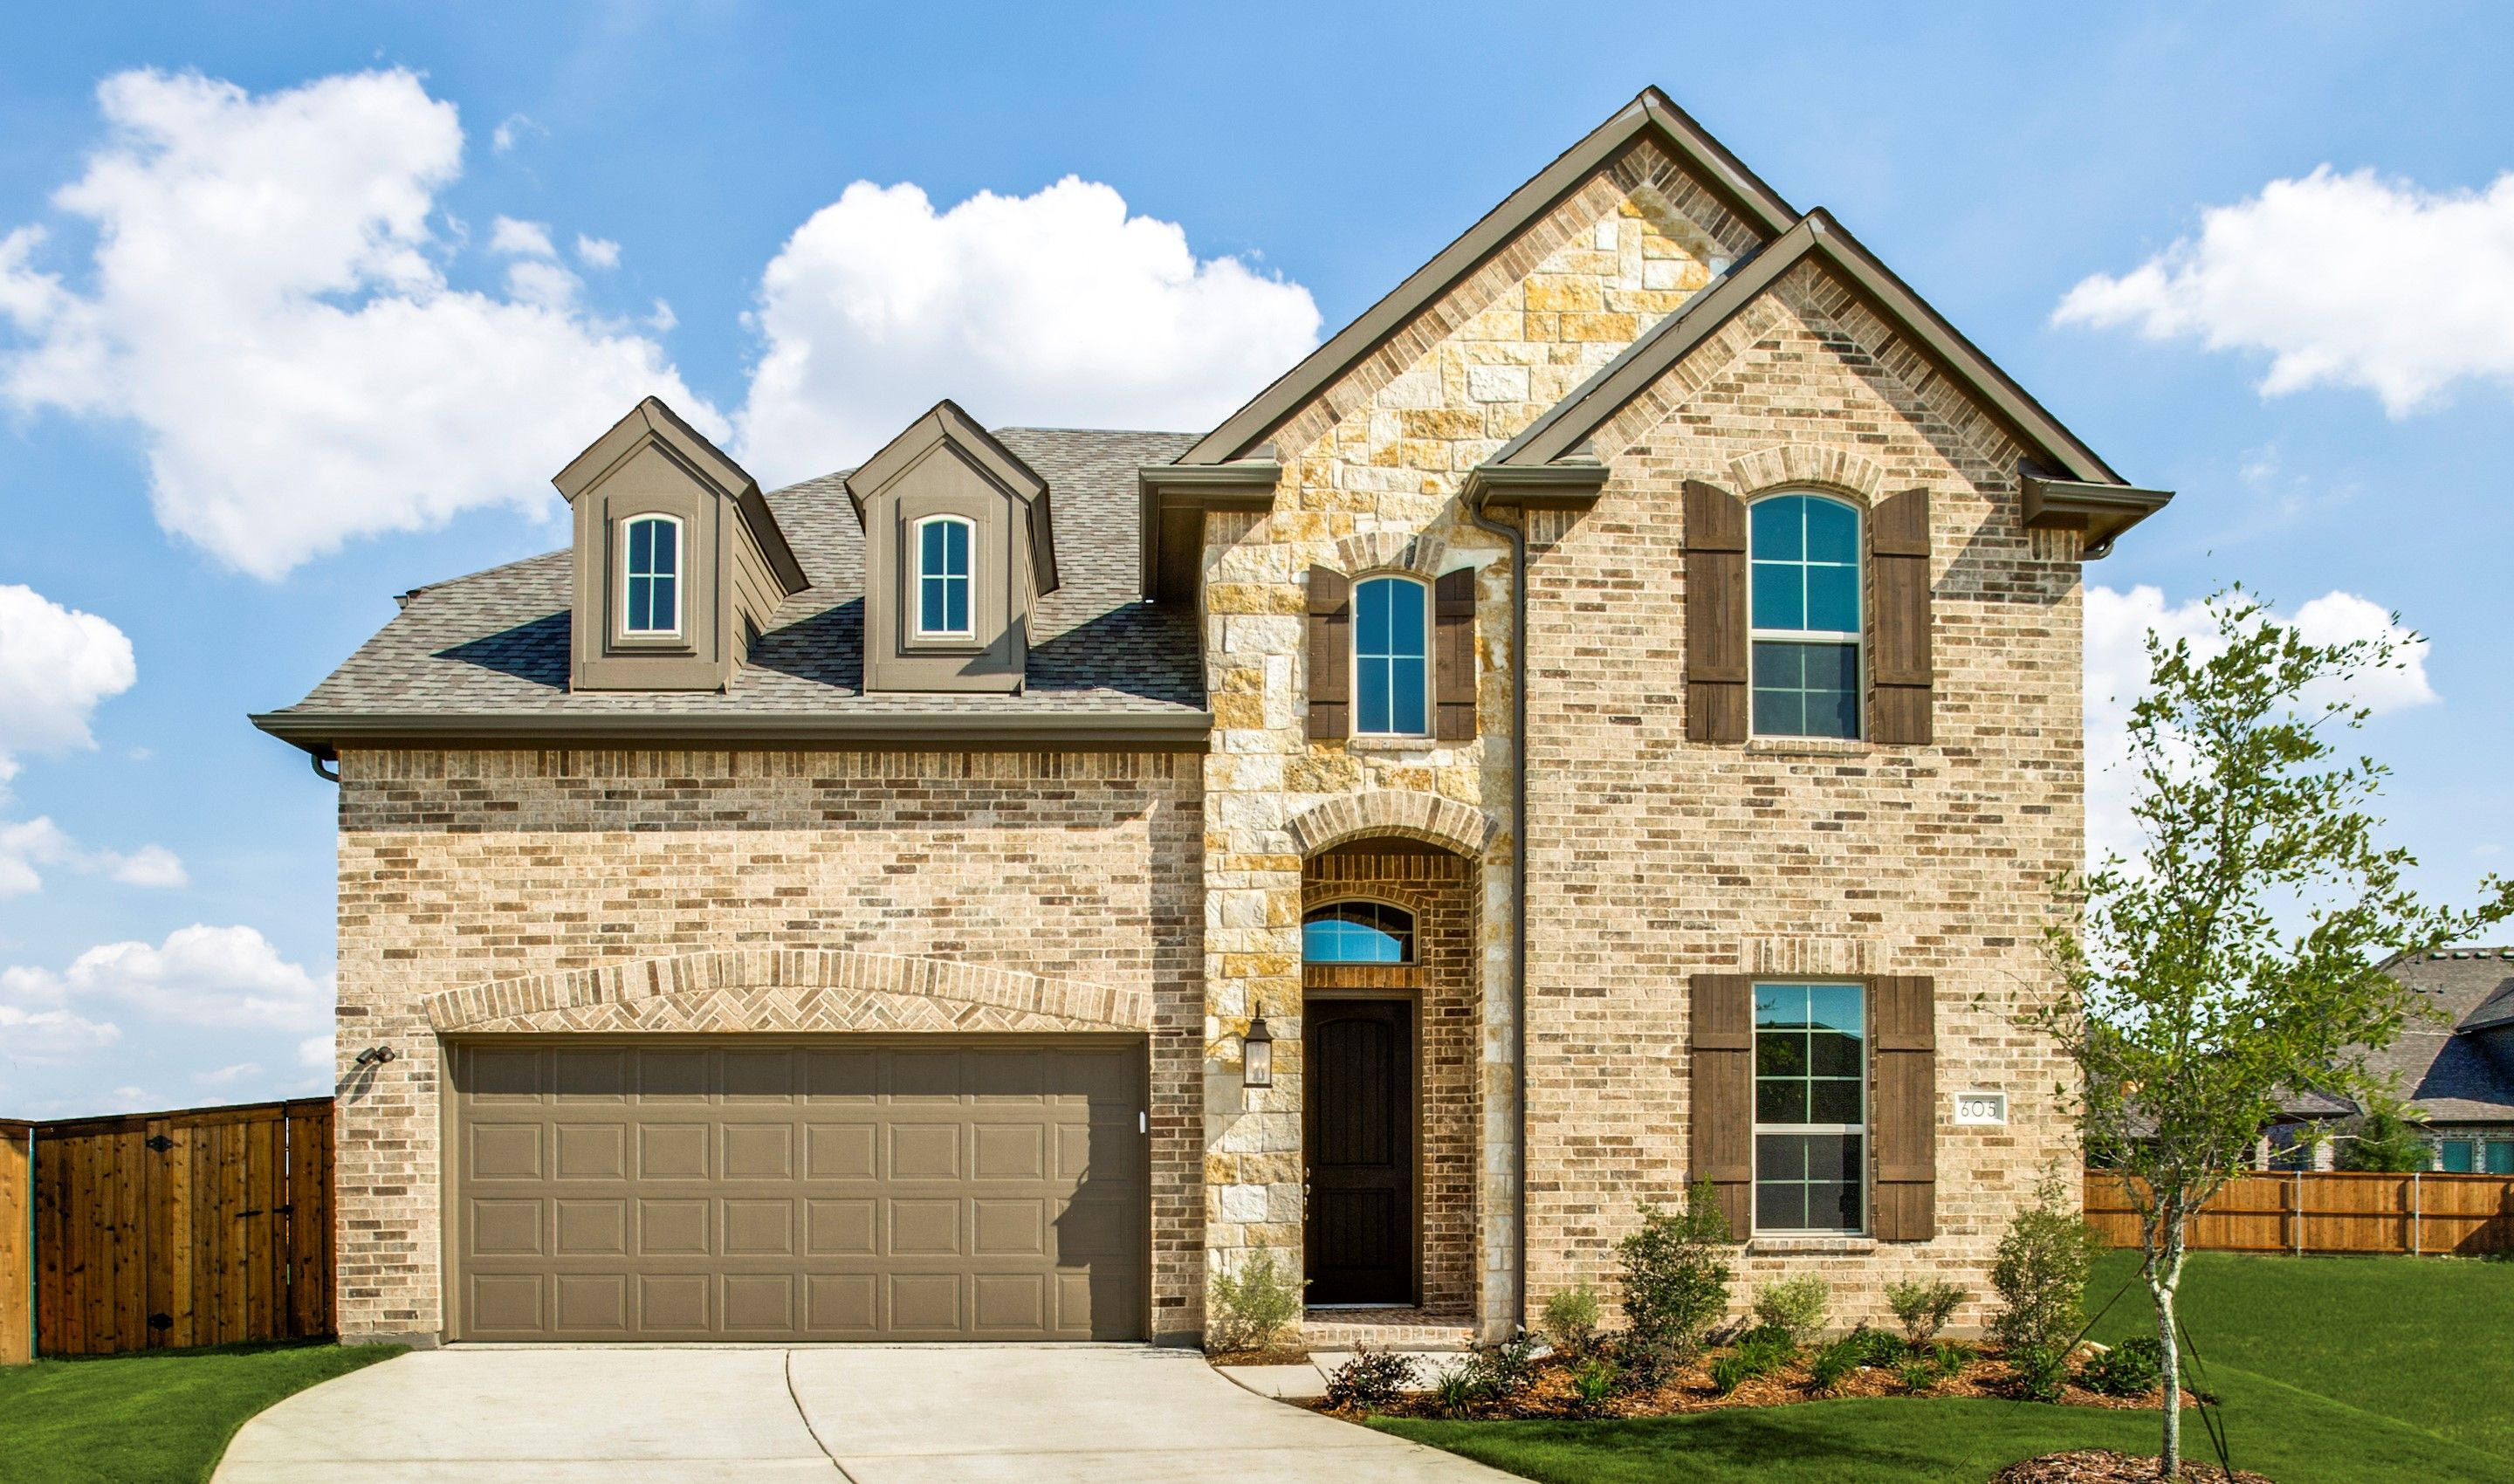 New Homes In Fort Worth, Tx - 3,670 New Homes